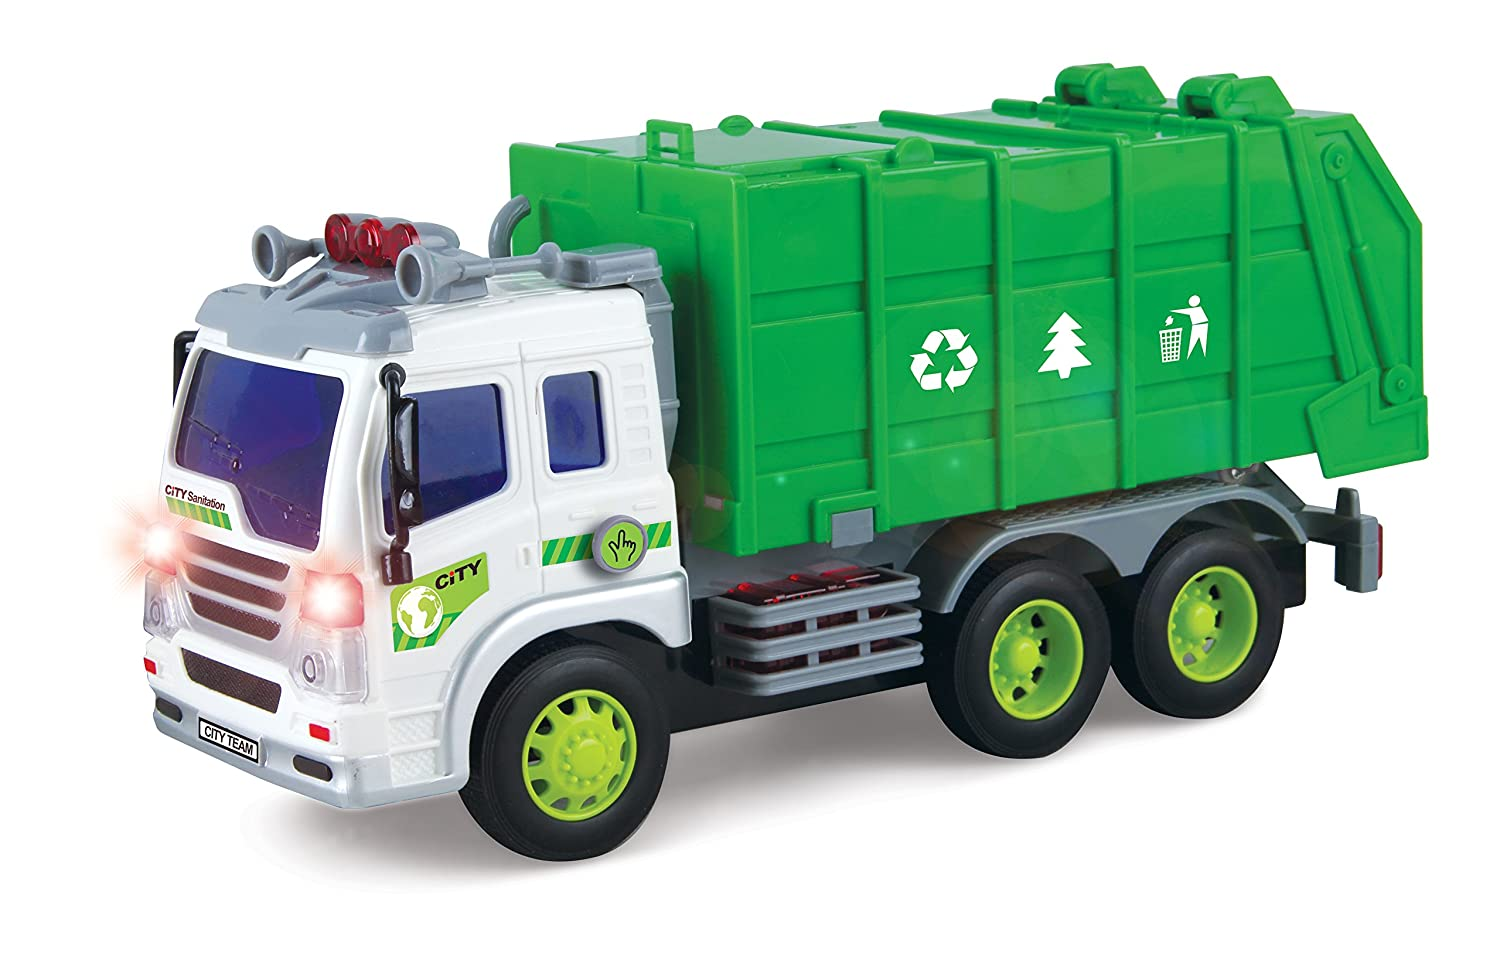 Friction Powered Sanitation Garbage Truck 1:16 Toy Vehicle with Lights and Sounds Liberty Imports